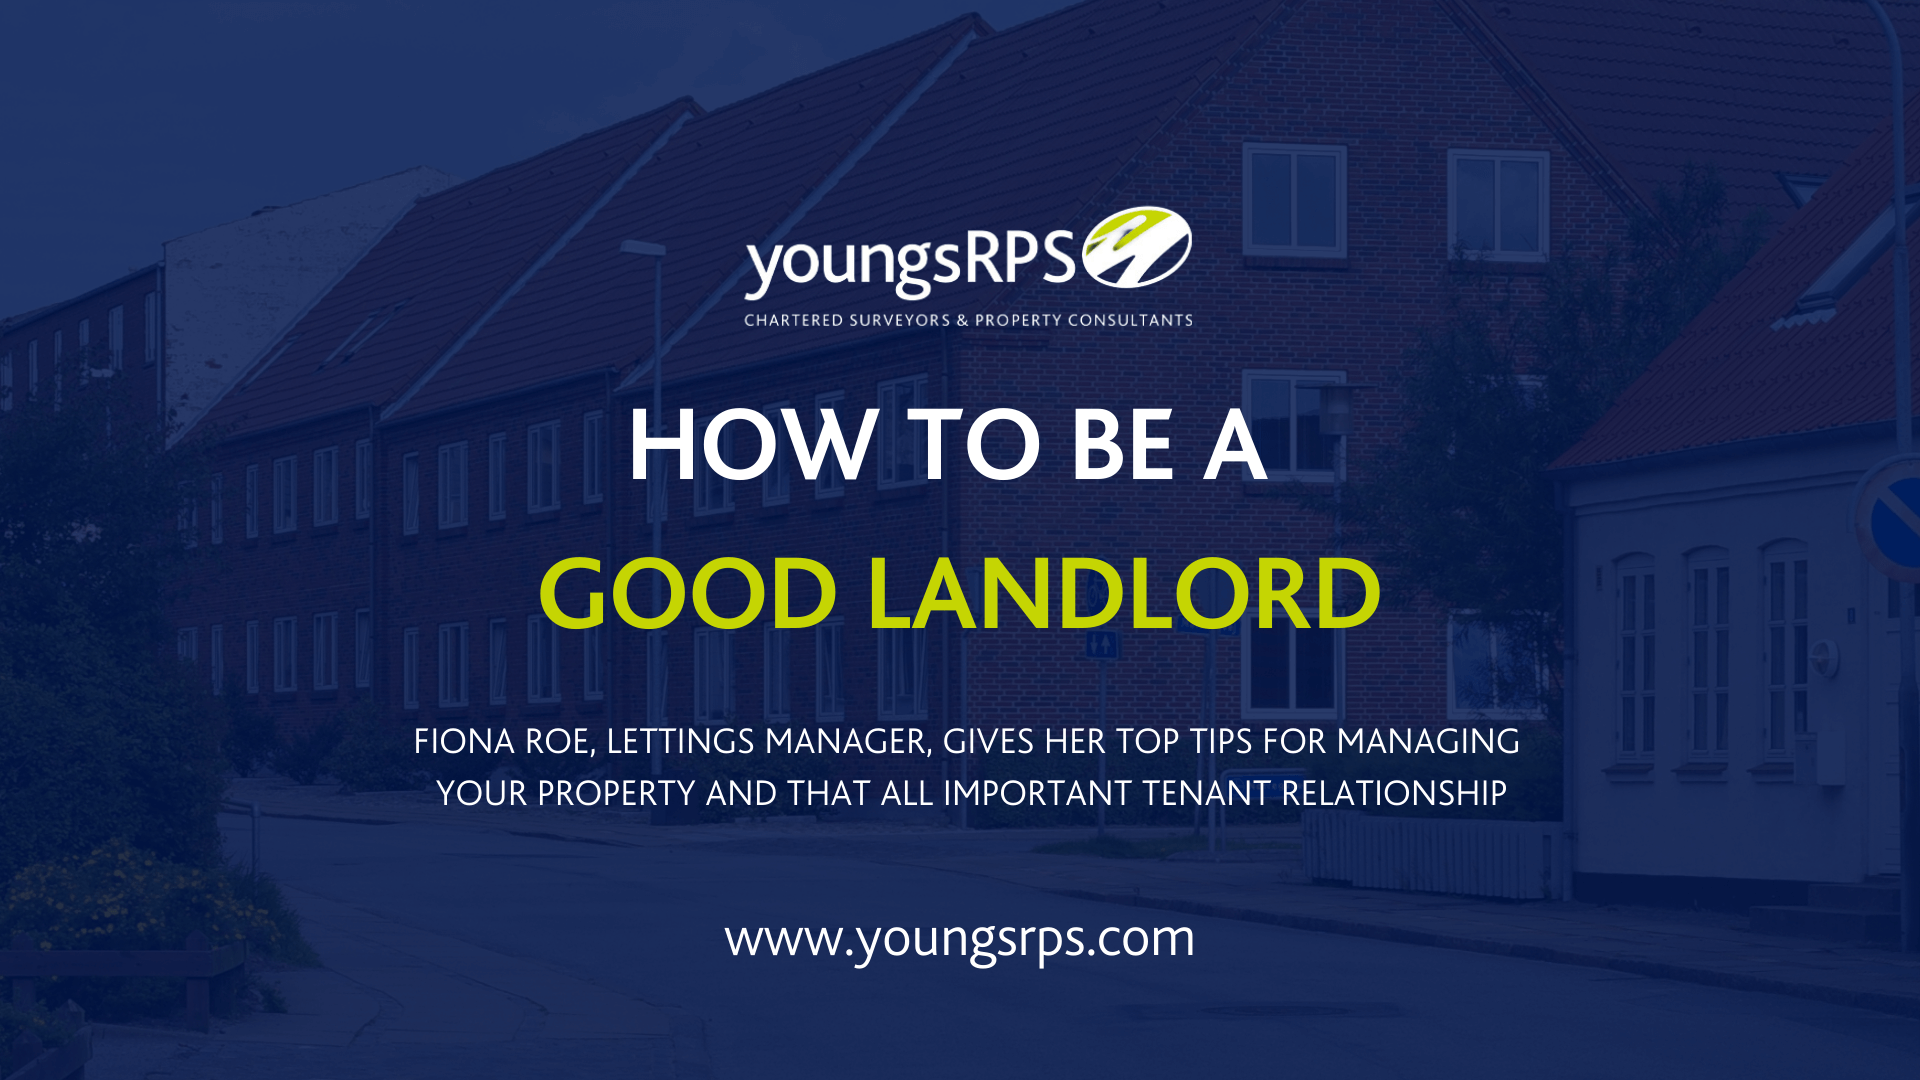 Lettings: How To Be A Good Landlord